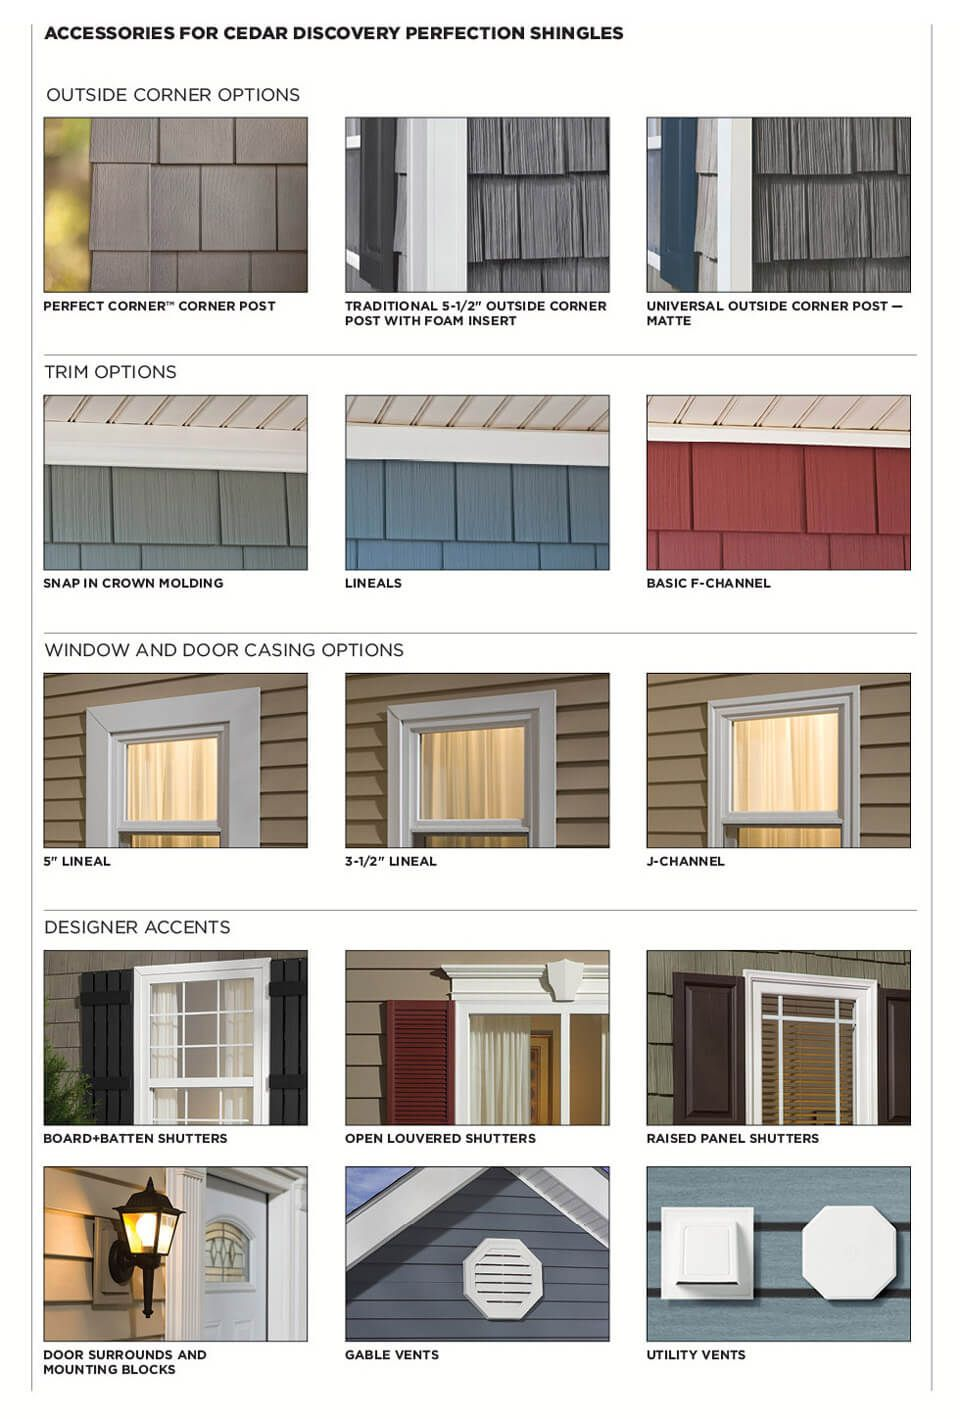 This Is The Exterior Solution R No Other Brand Offers Vinyl Siding Polymer Shakes And Shin House Exterior Vinyl Cedar Shake Siding Outdoor Remodel